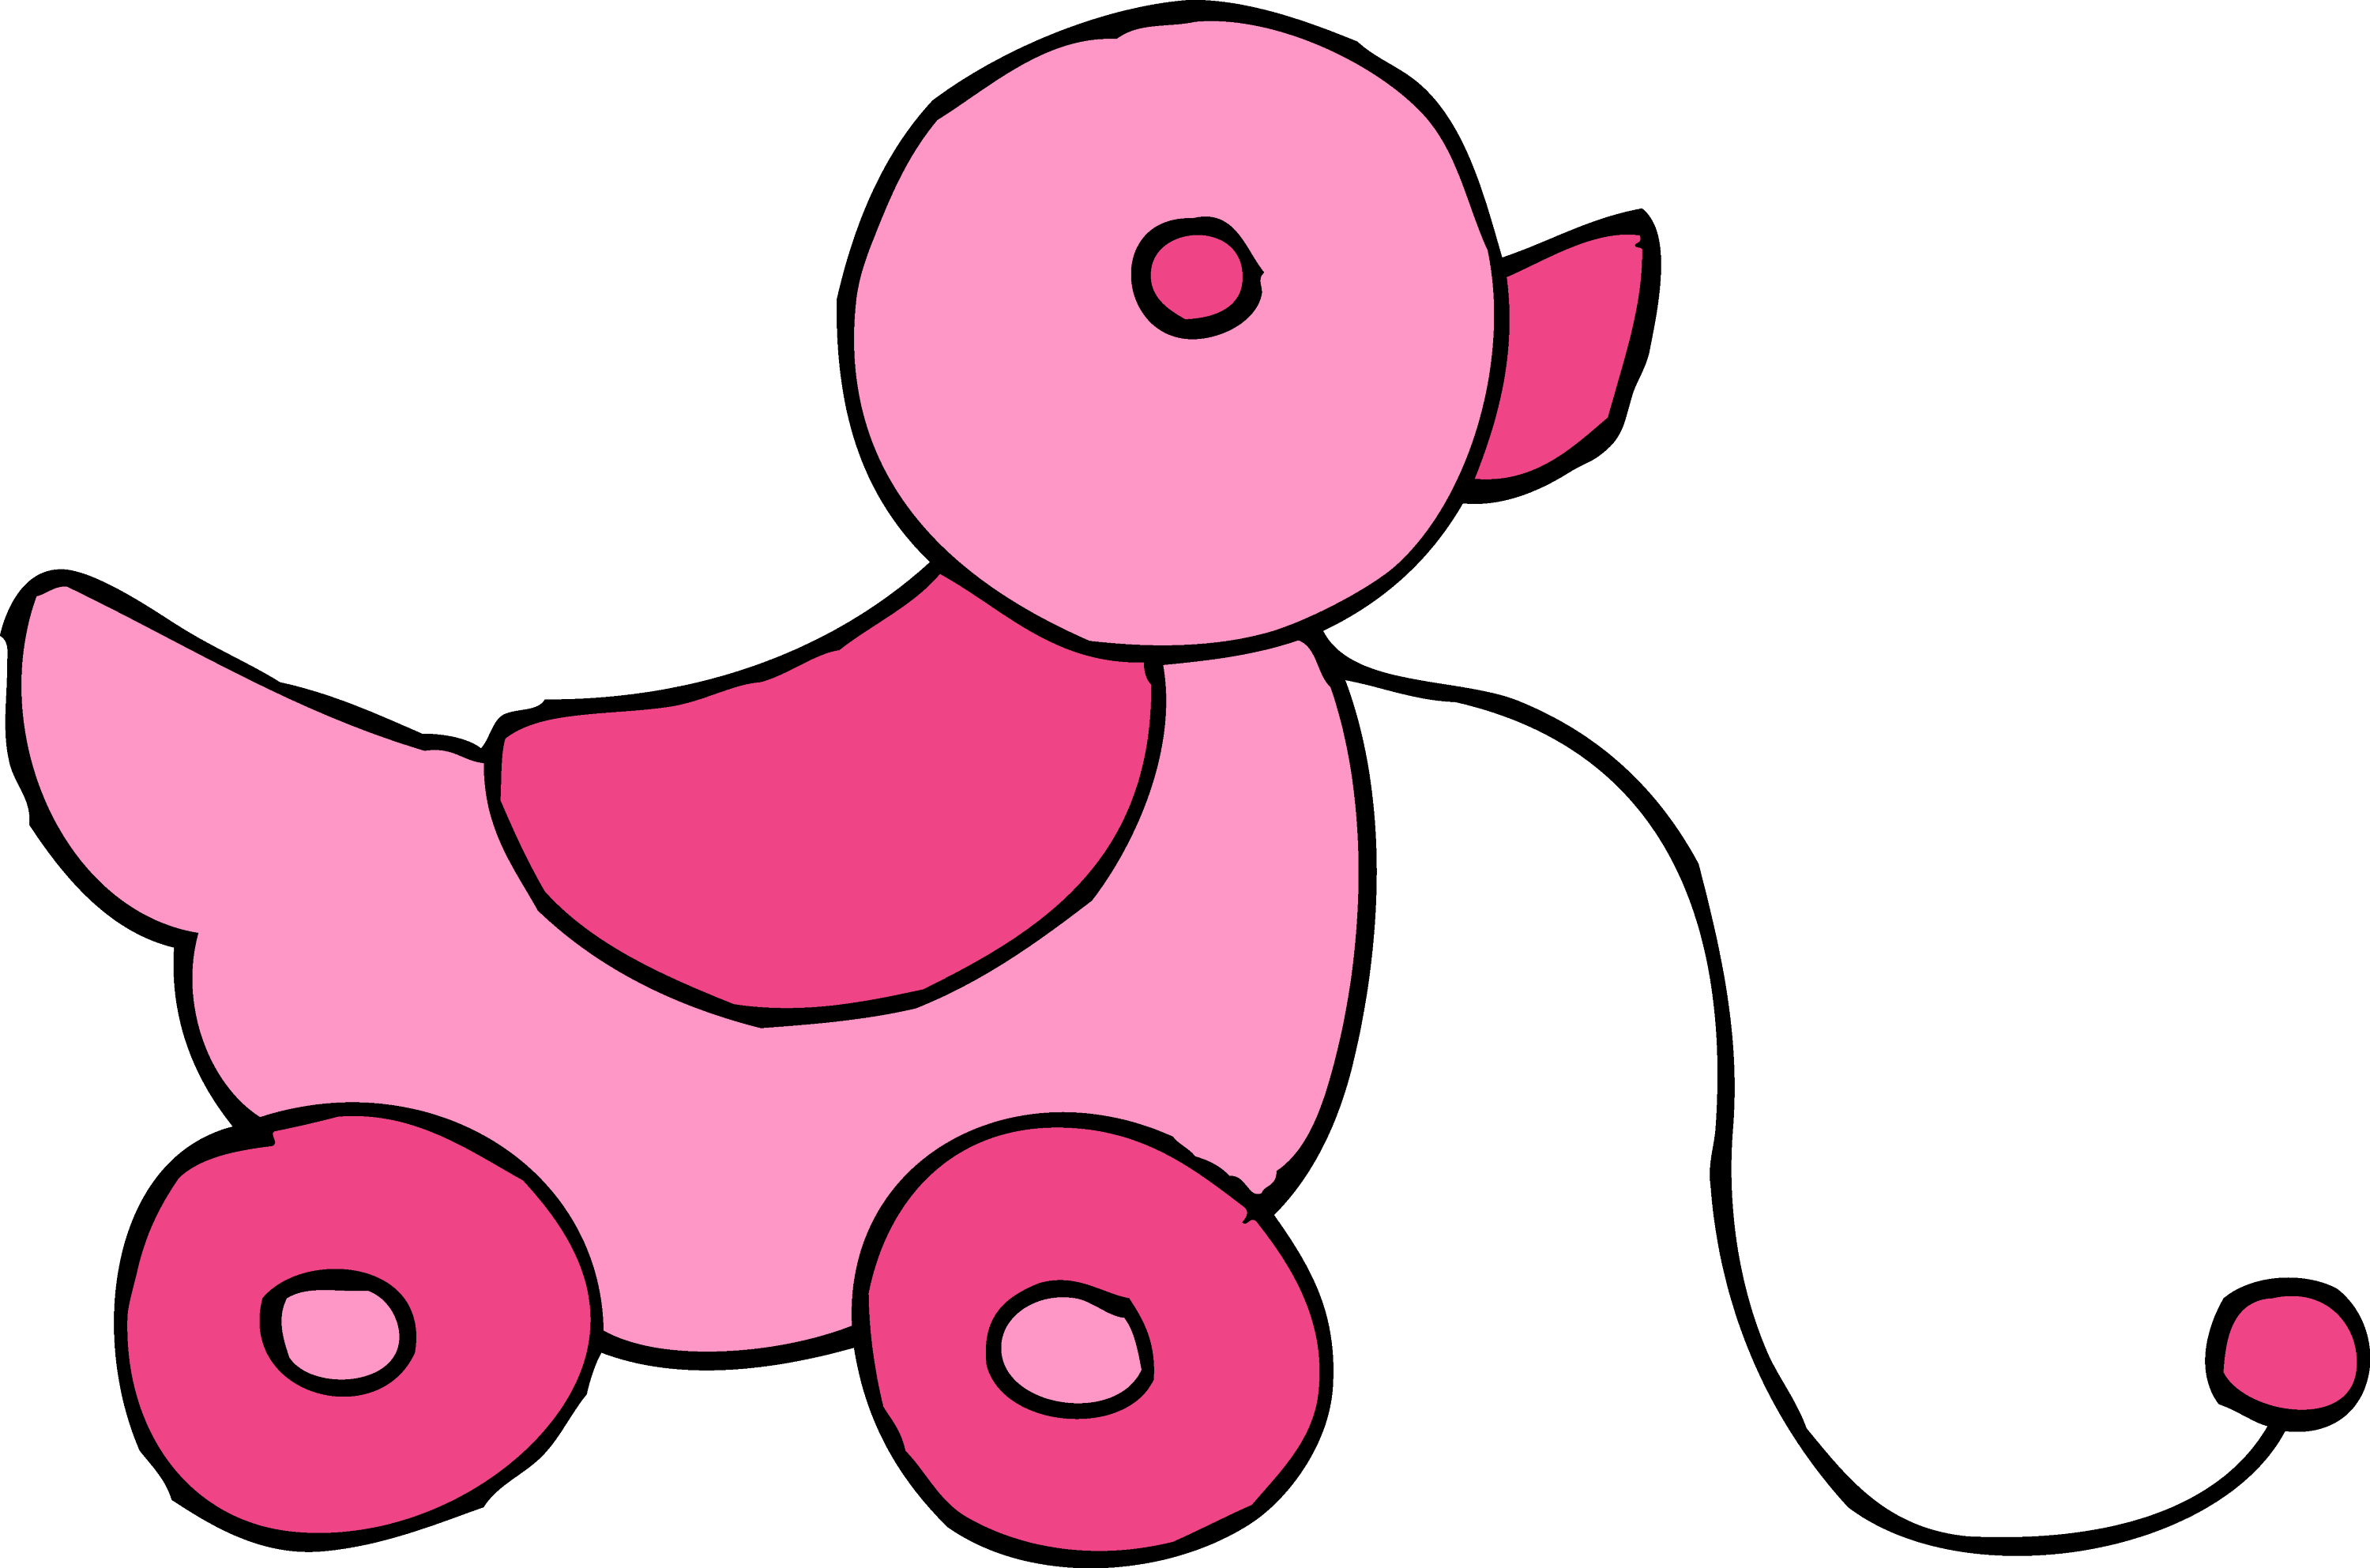 Girl Toys Clip Art : Cute rolling pink duck toy free clip art